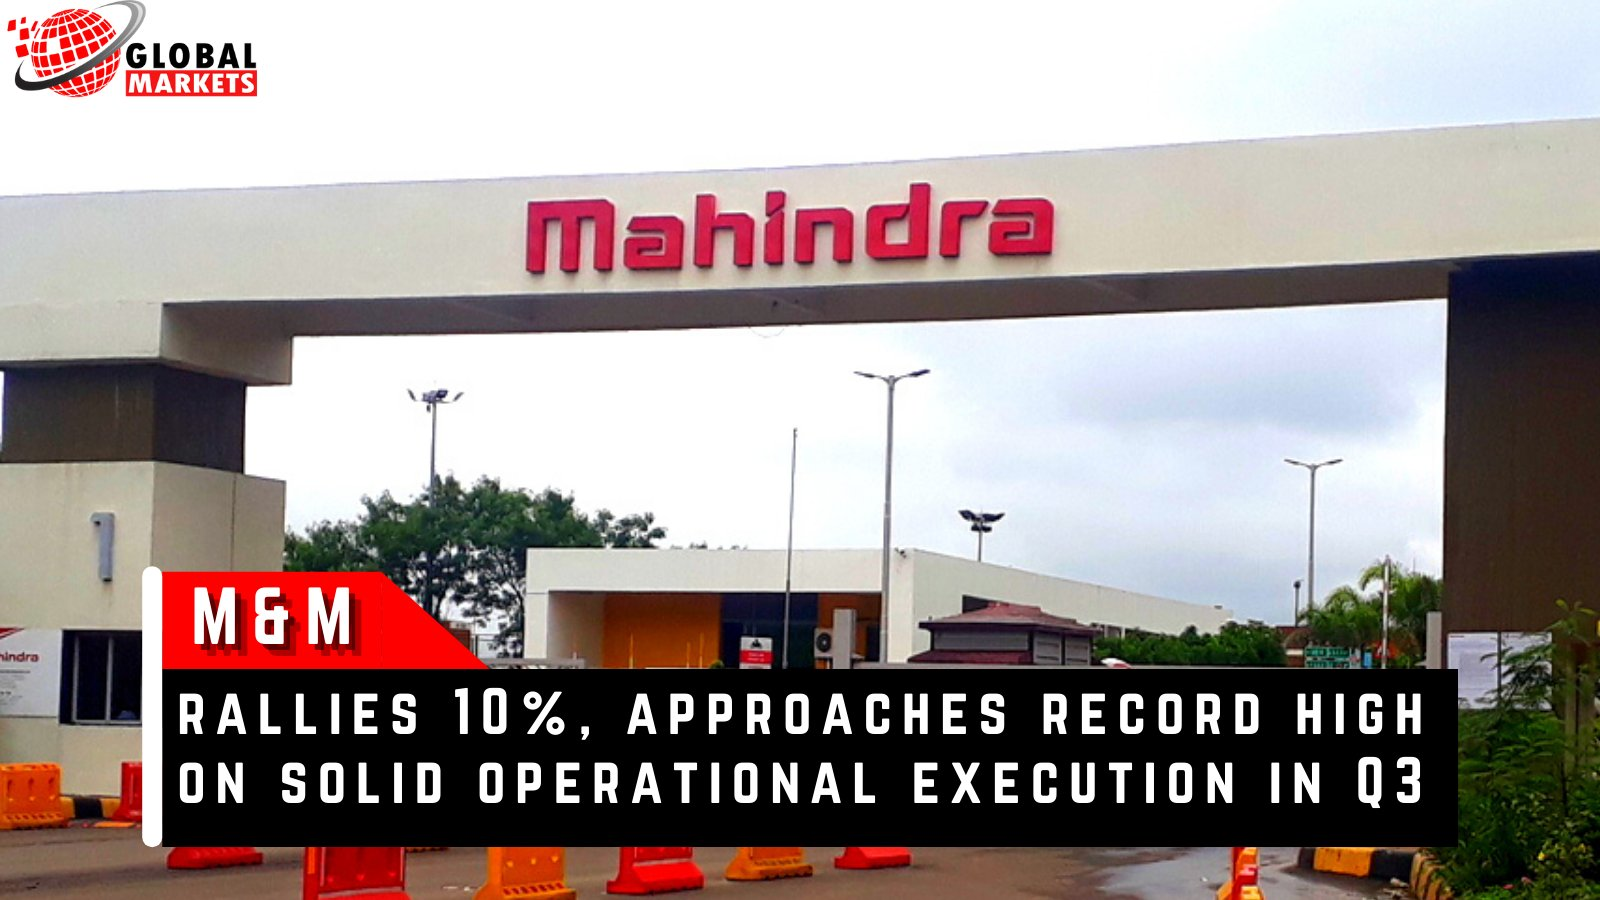 M&M rallies 10%, approaches record high on solid operational execution in Q3